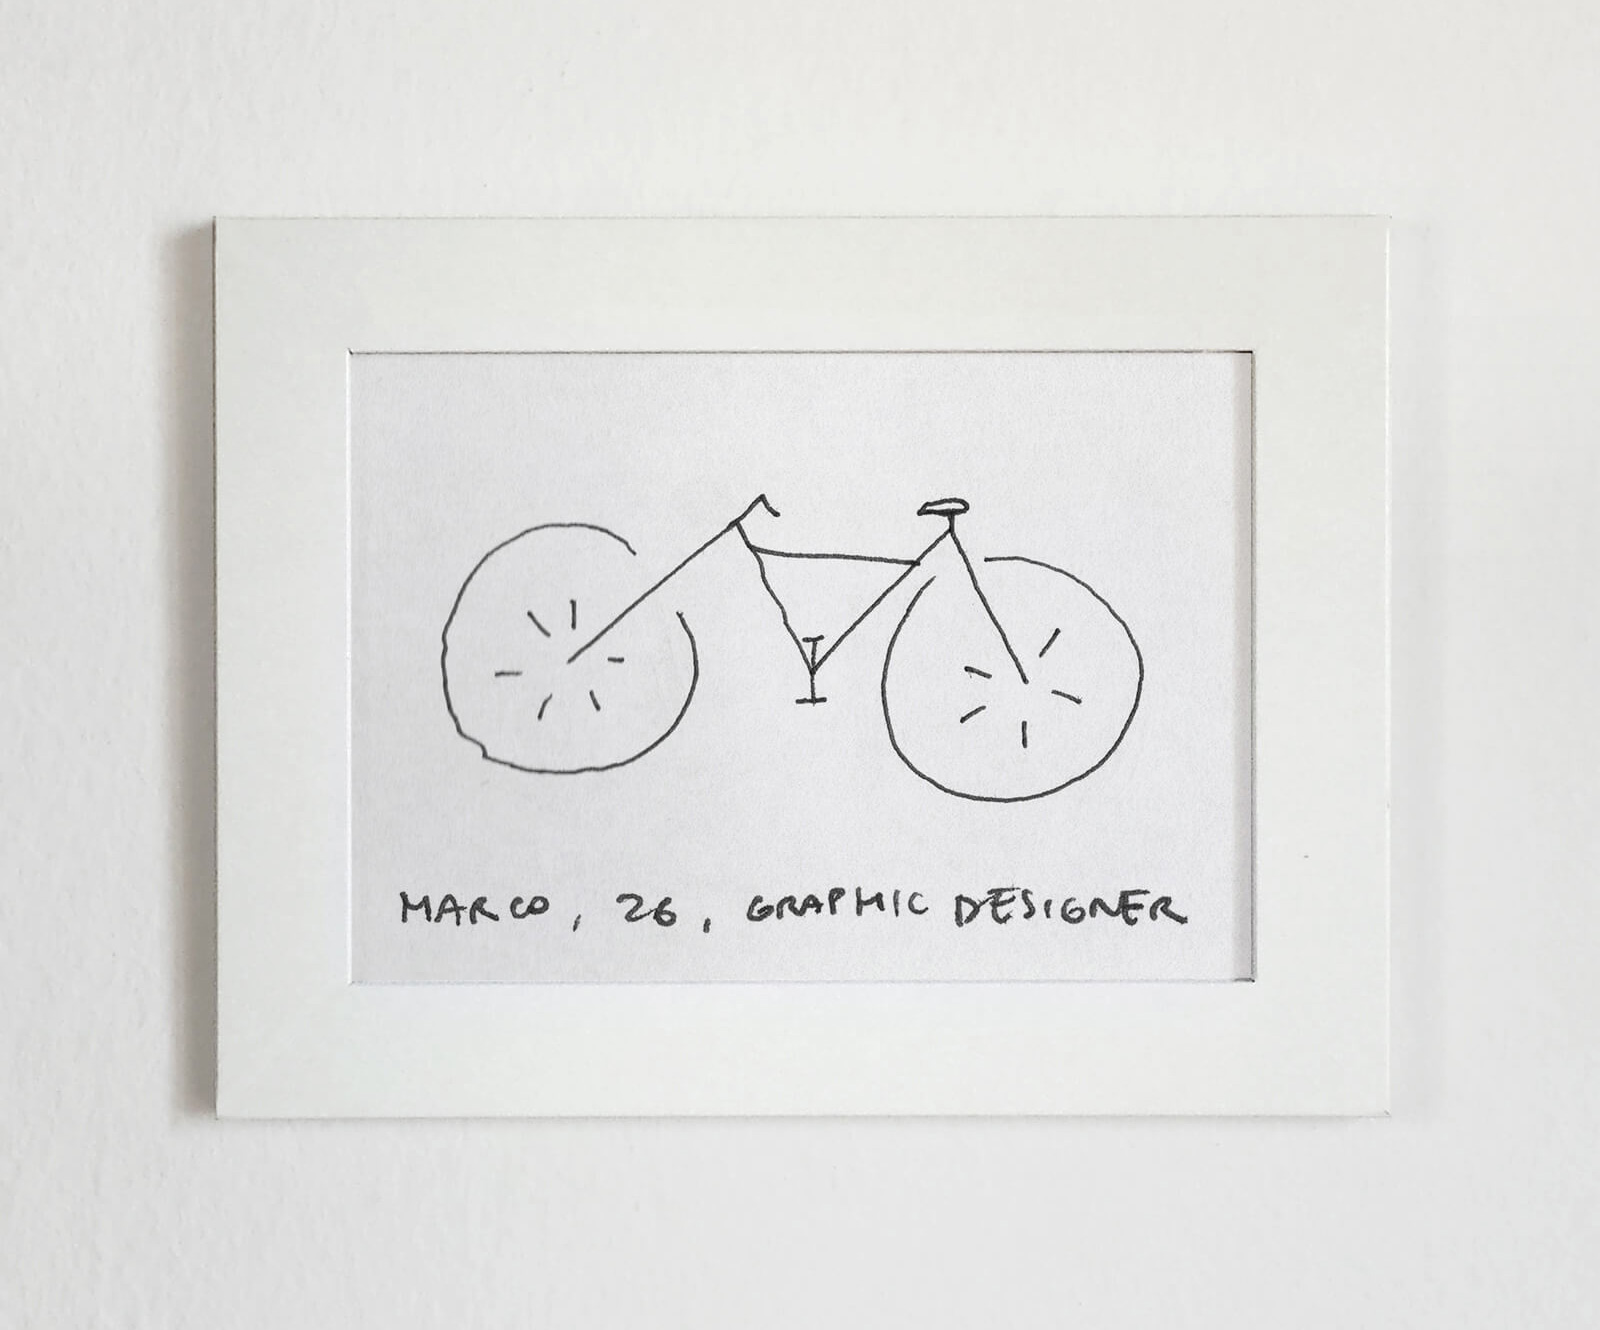 The design by  36-year-old graphic designer Marco is huge wheels bicycle in a one line drawing | Velocipedia | Gianluca Gimini | STIRworld